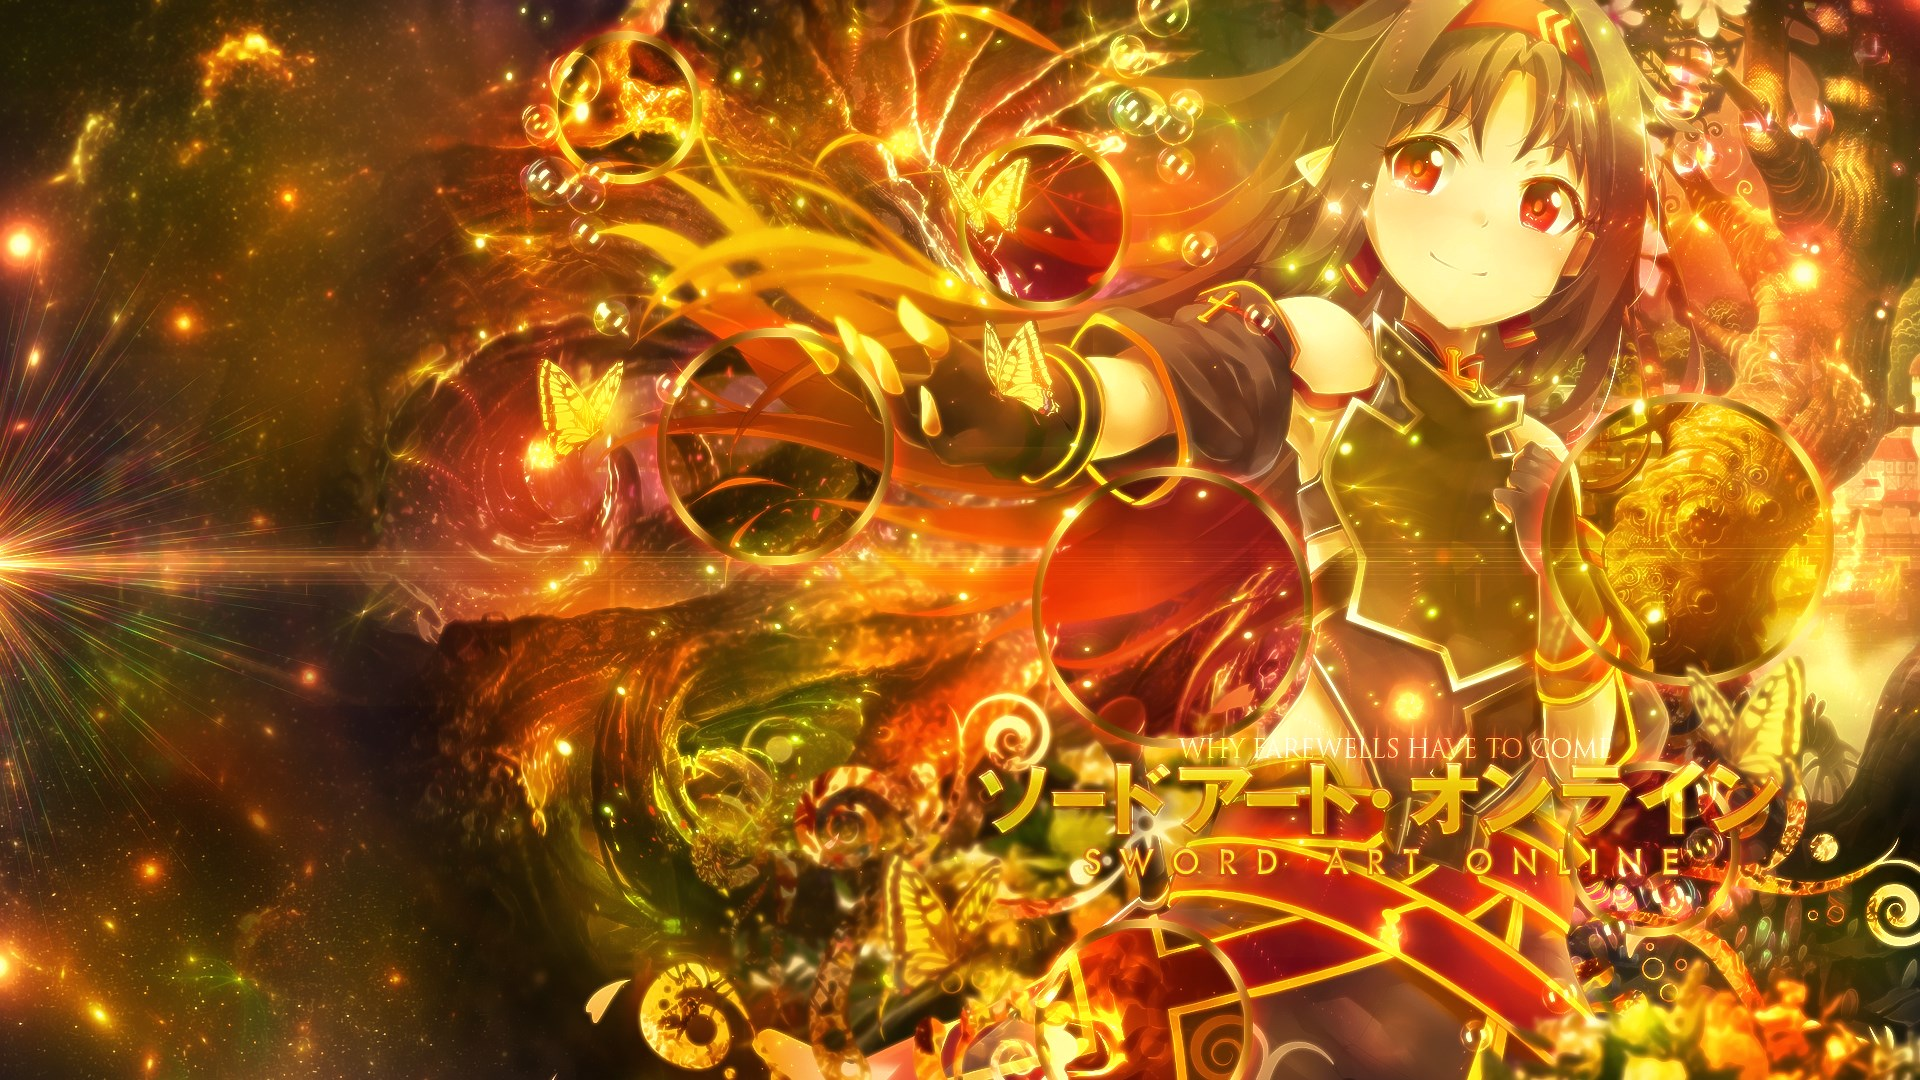 1920x1080-free-high-resolution-sword-art-online-ii-wallpaper-wpc920799